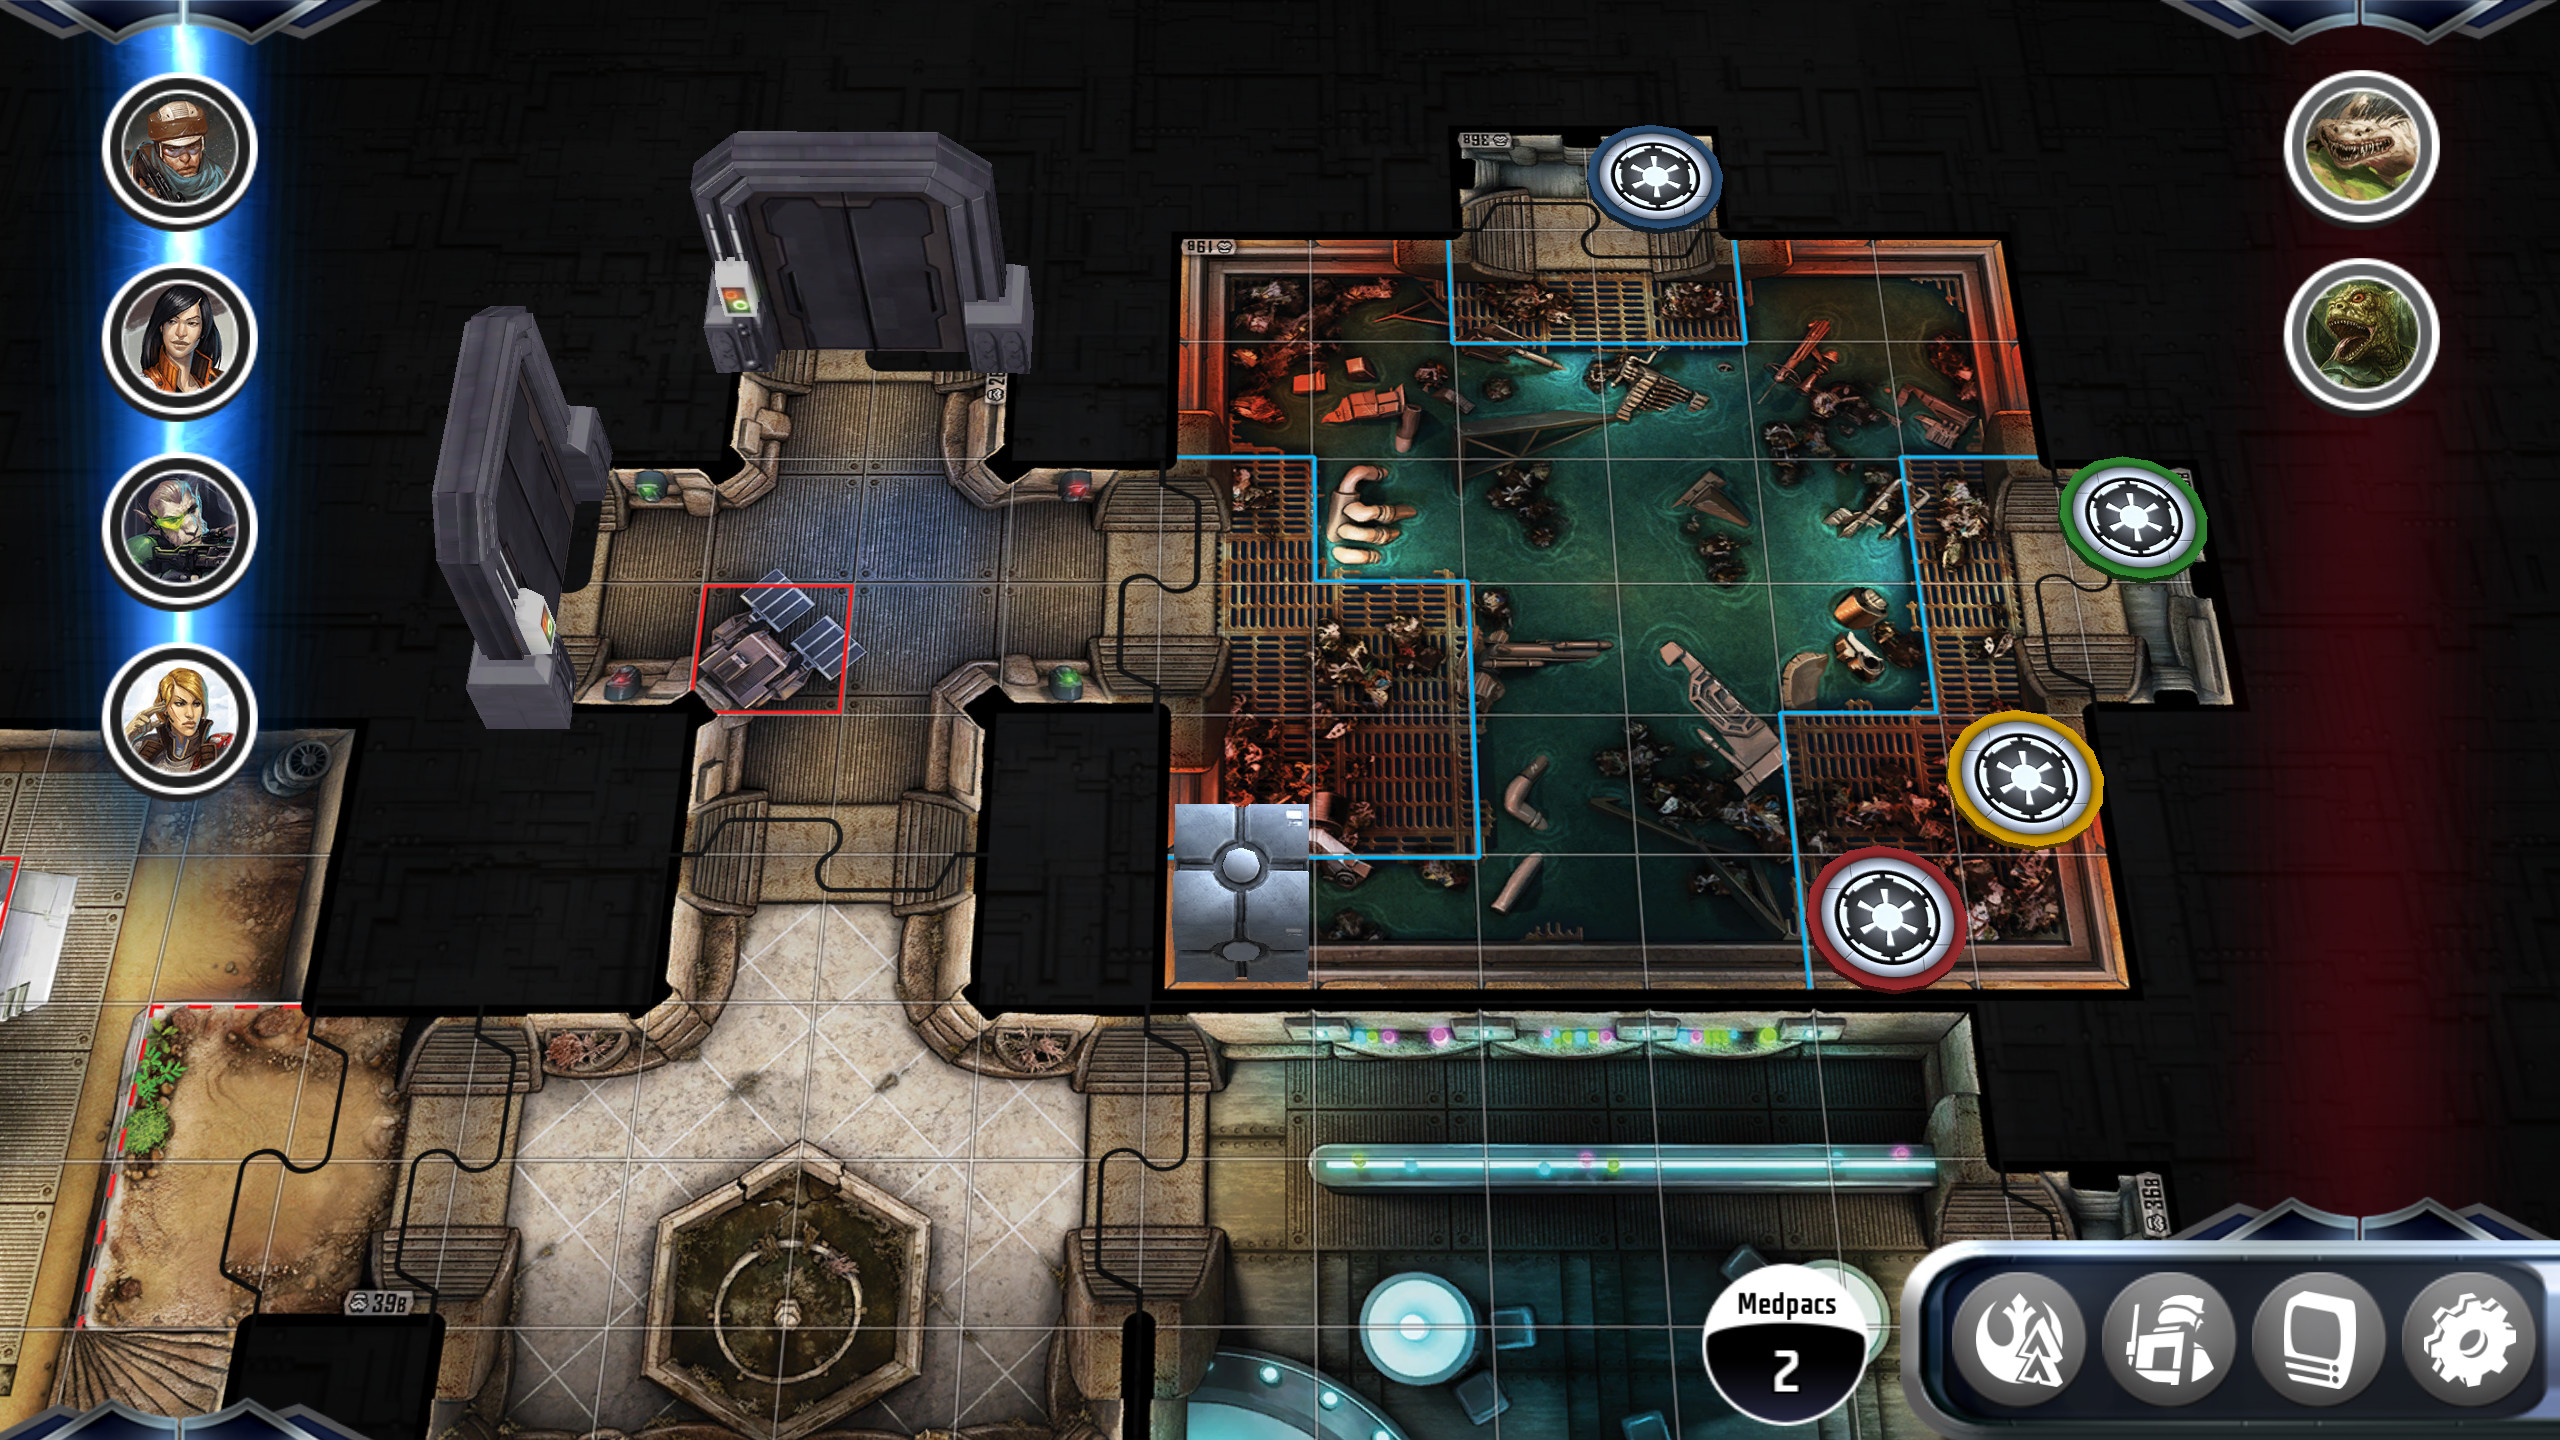 What's On Steam - Star Wars: Imperial Assault - Legends of